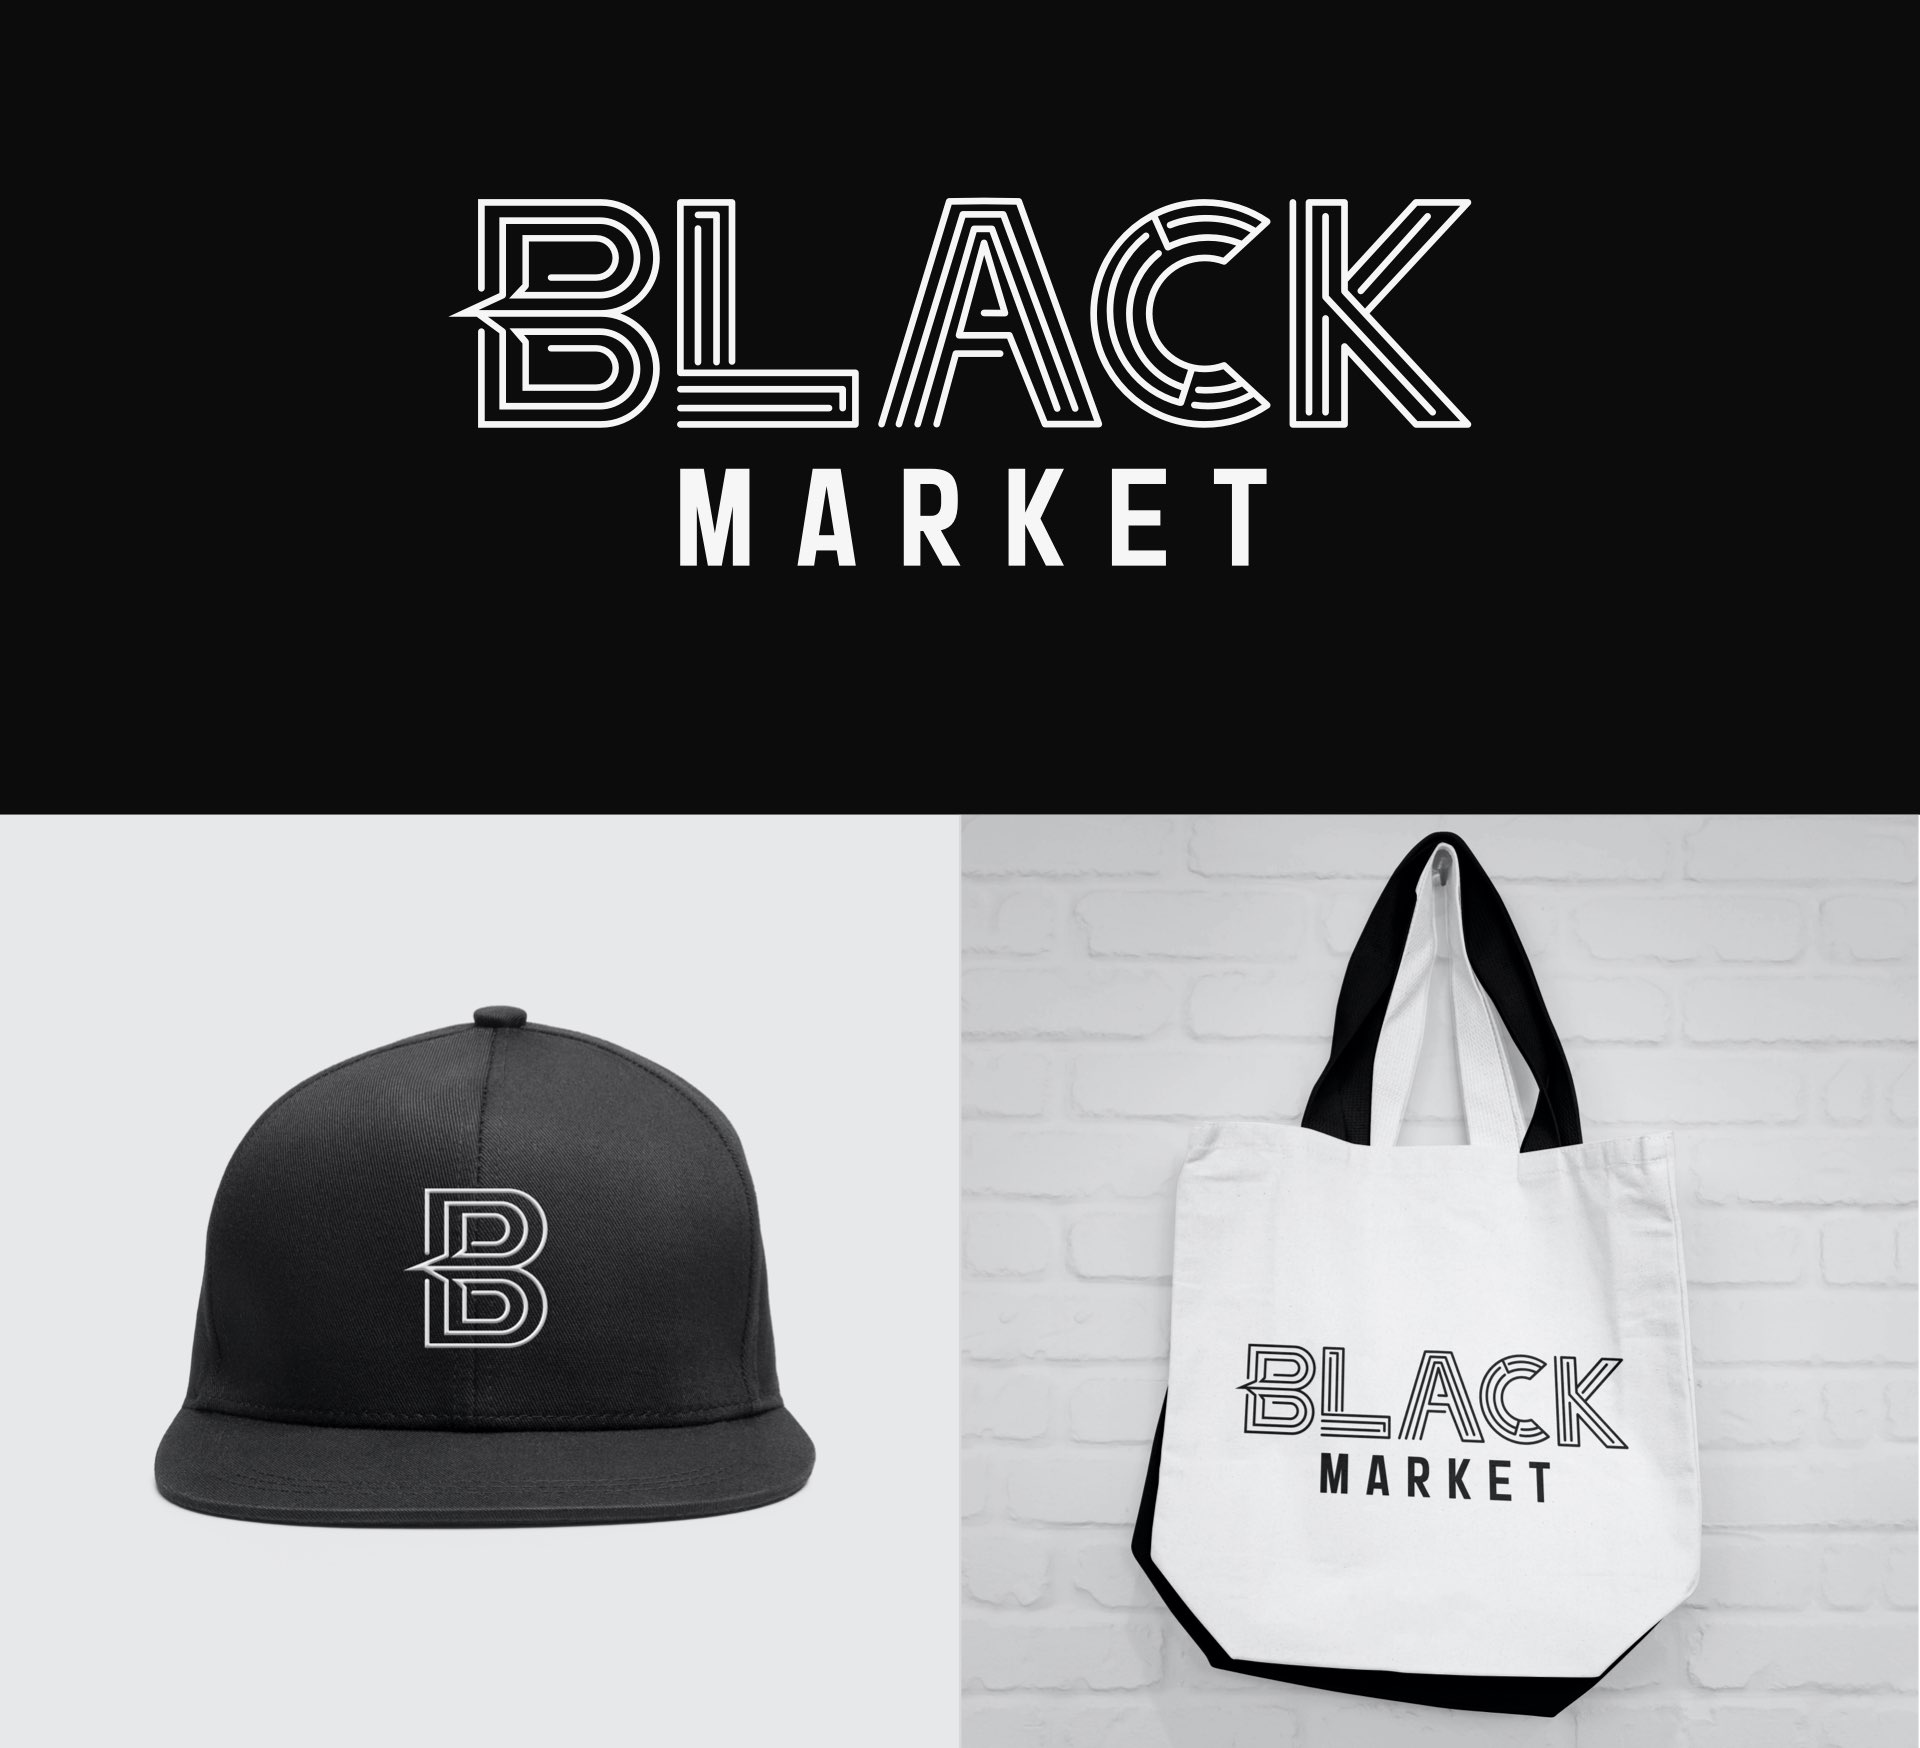 Black Market logo, hat, and bag